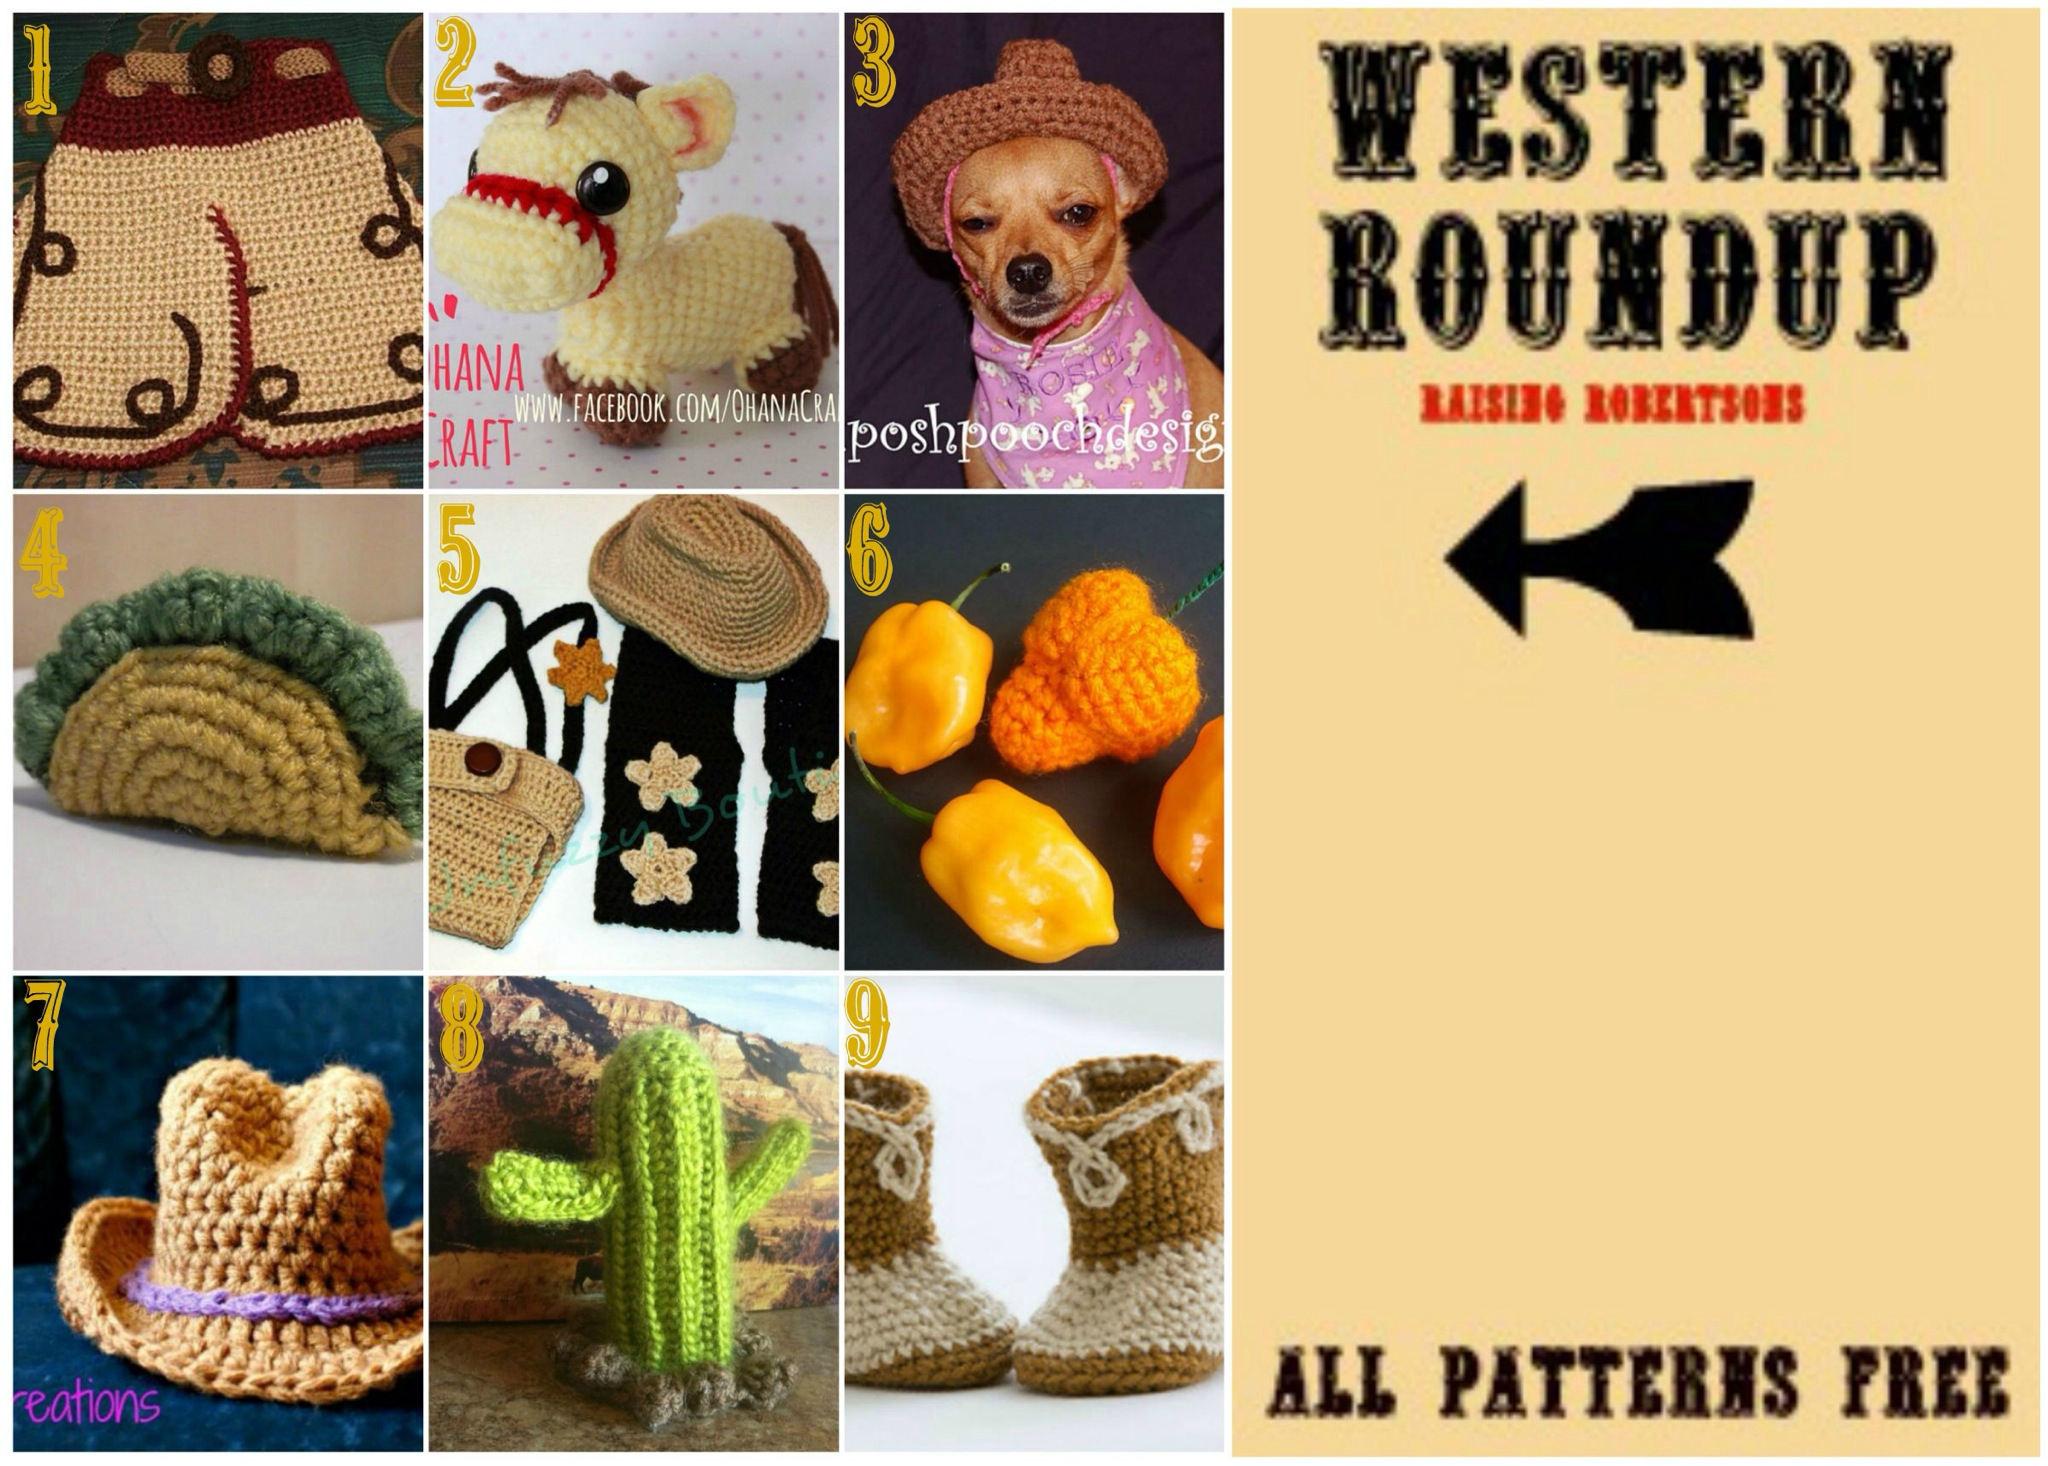 Western Round Up! – Raising Robertsons Farts